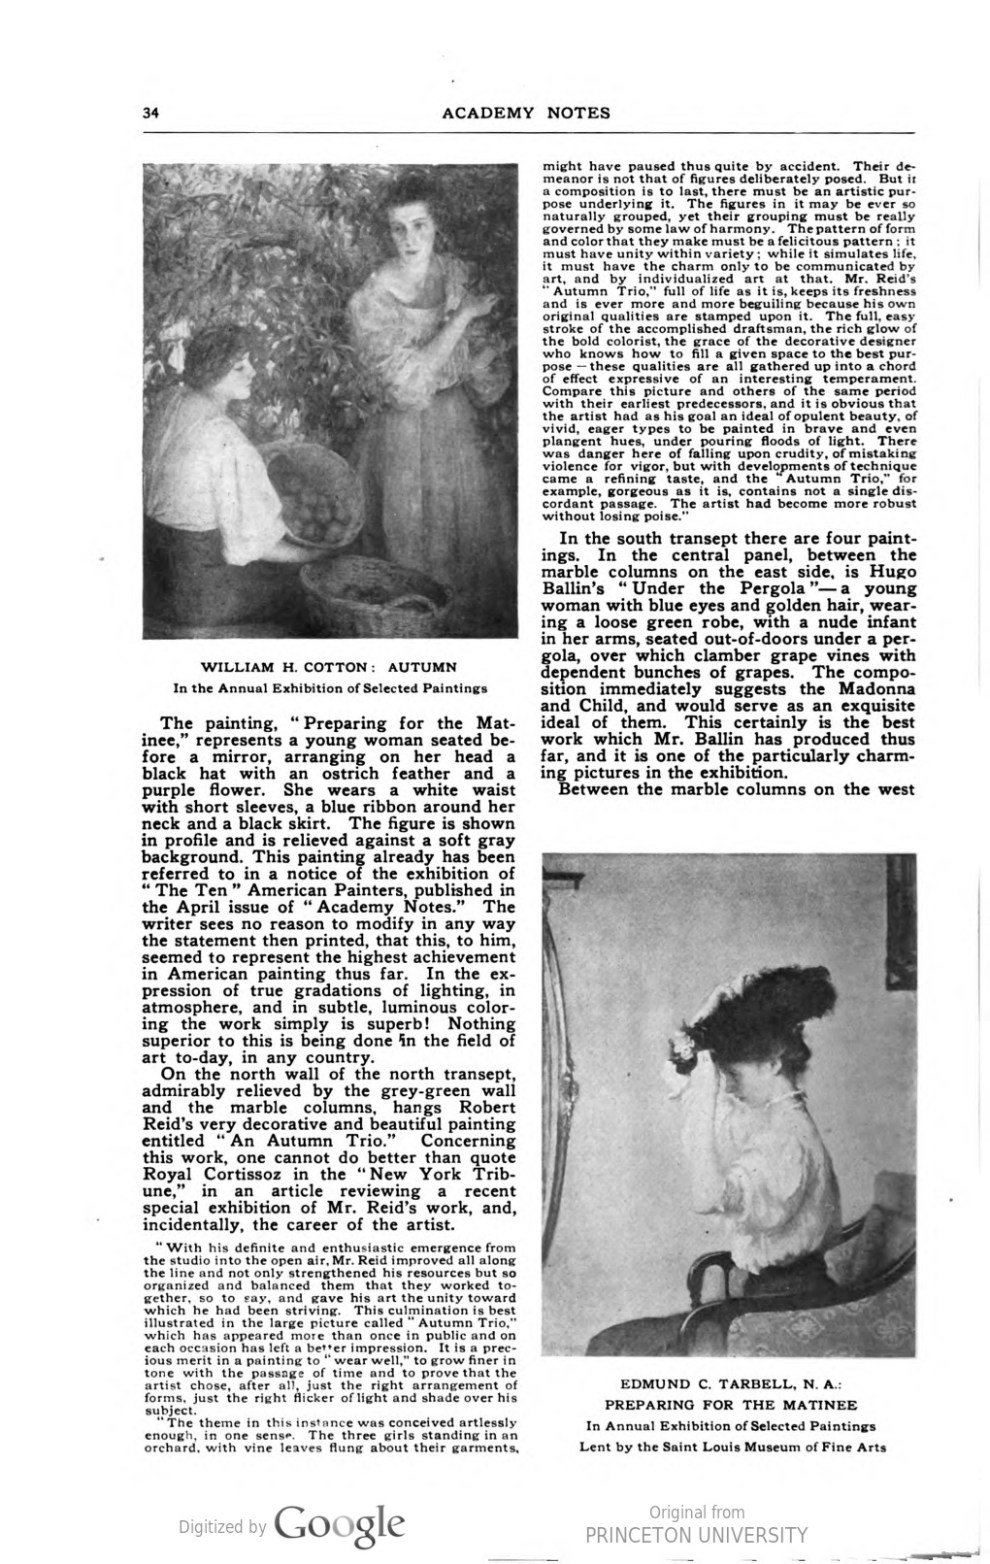 """Academy Notes, Buffalo Fine Arts Academy, Albright Art Gallery, Buffalo, NY, """"Third Annual Exhibition Selected American Paintings at the Albright Art Gallery Third Paper"""", August, 1908, Volume 4, Number 3, page 33-37, not illustrated"""